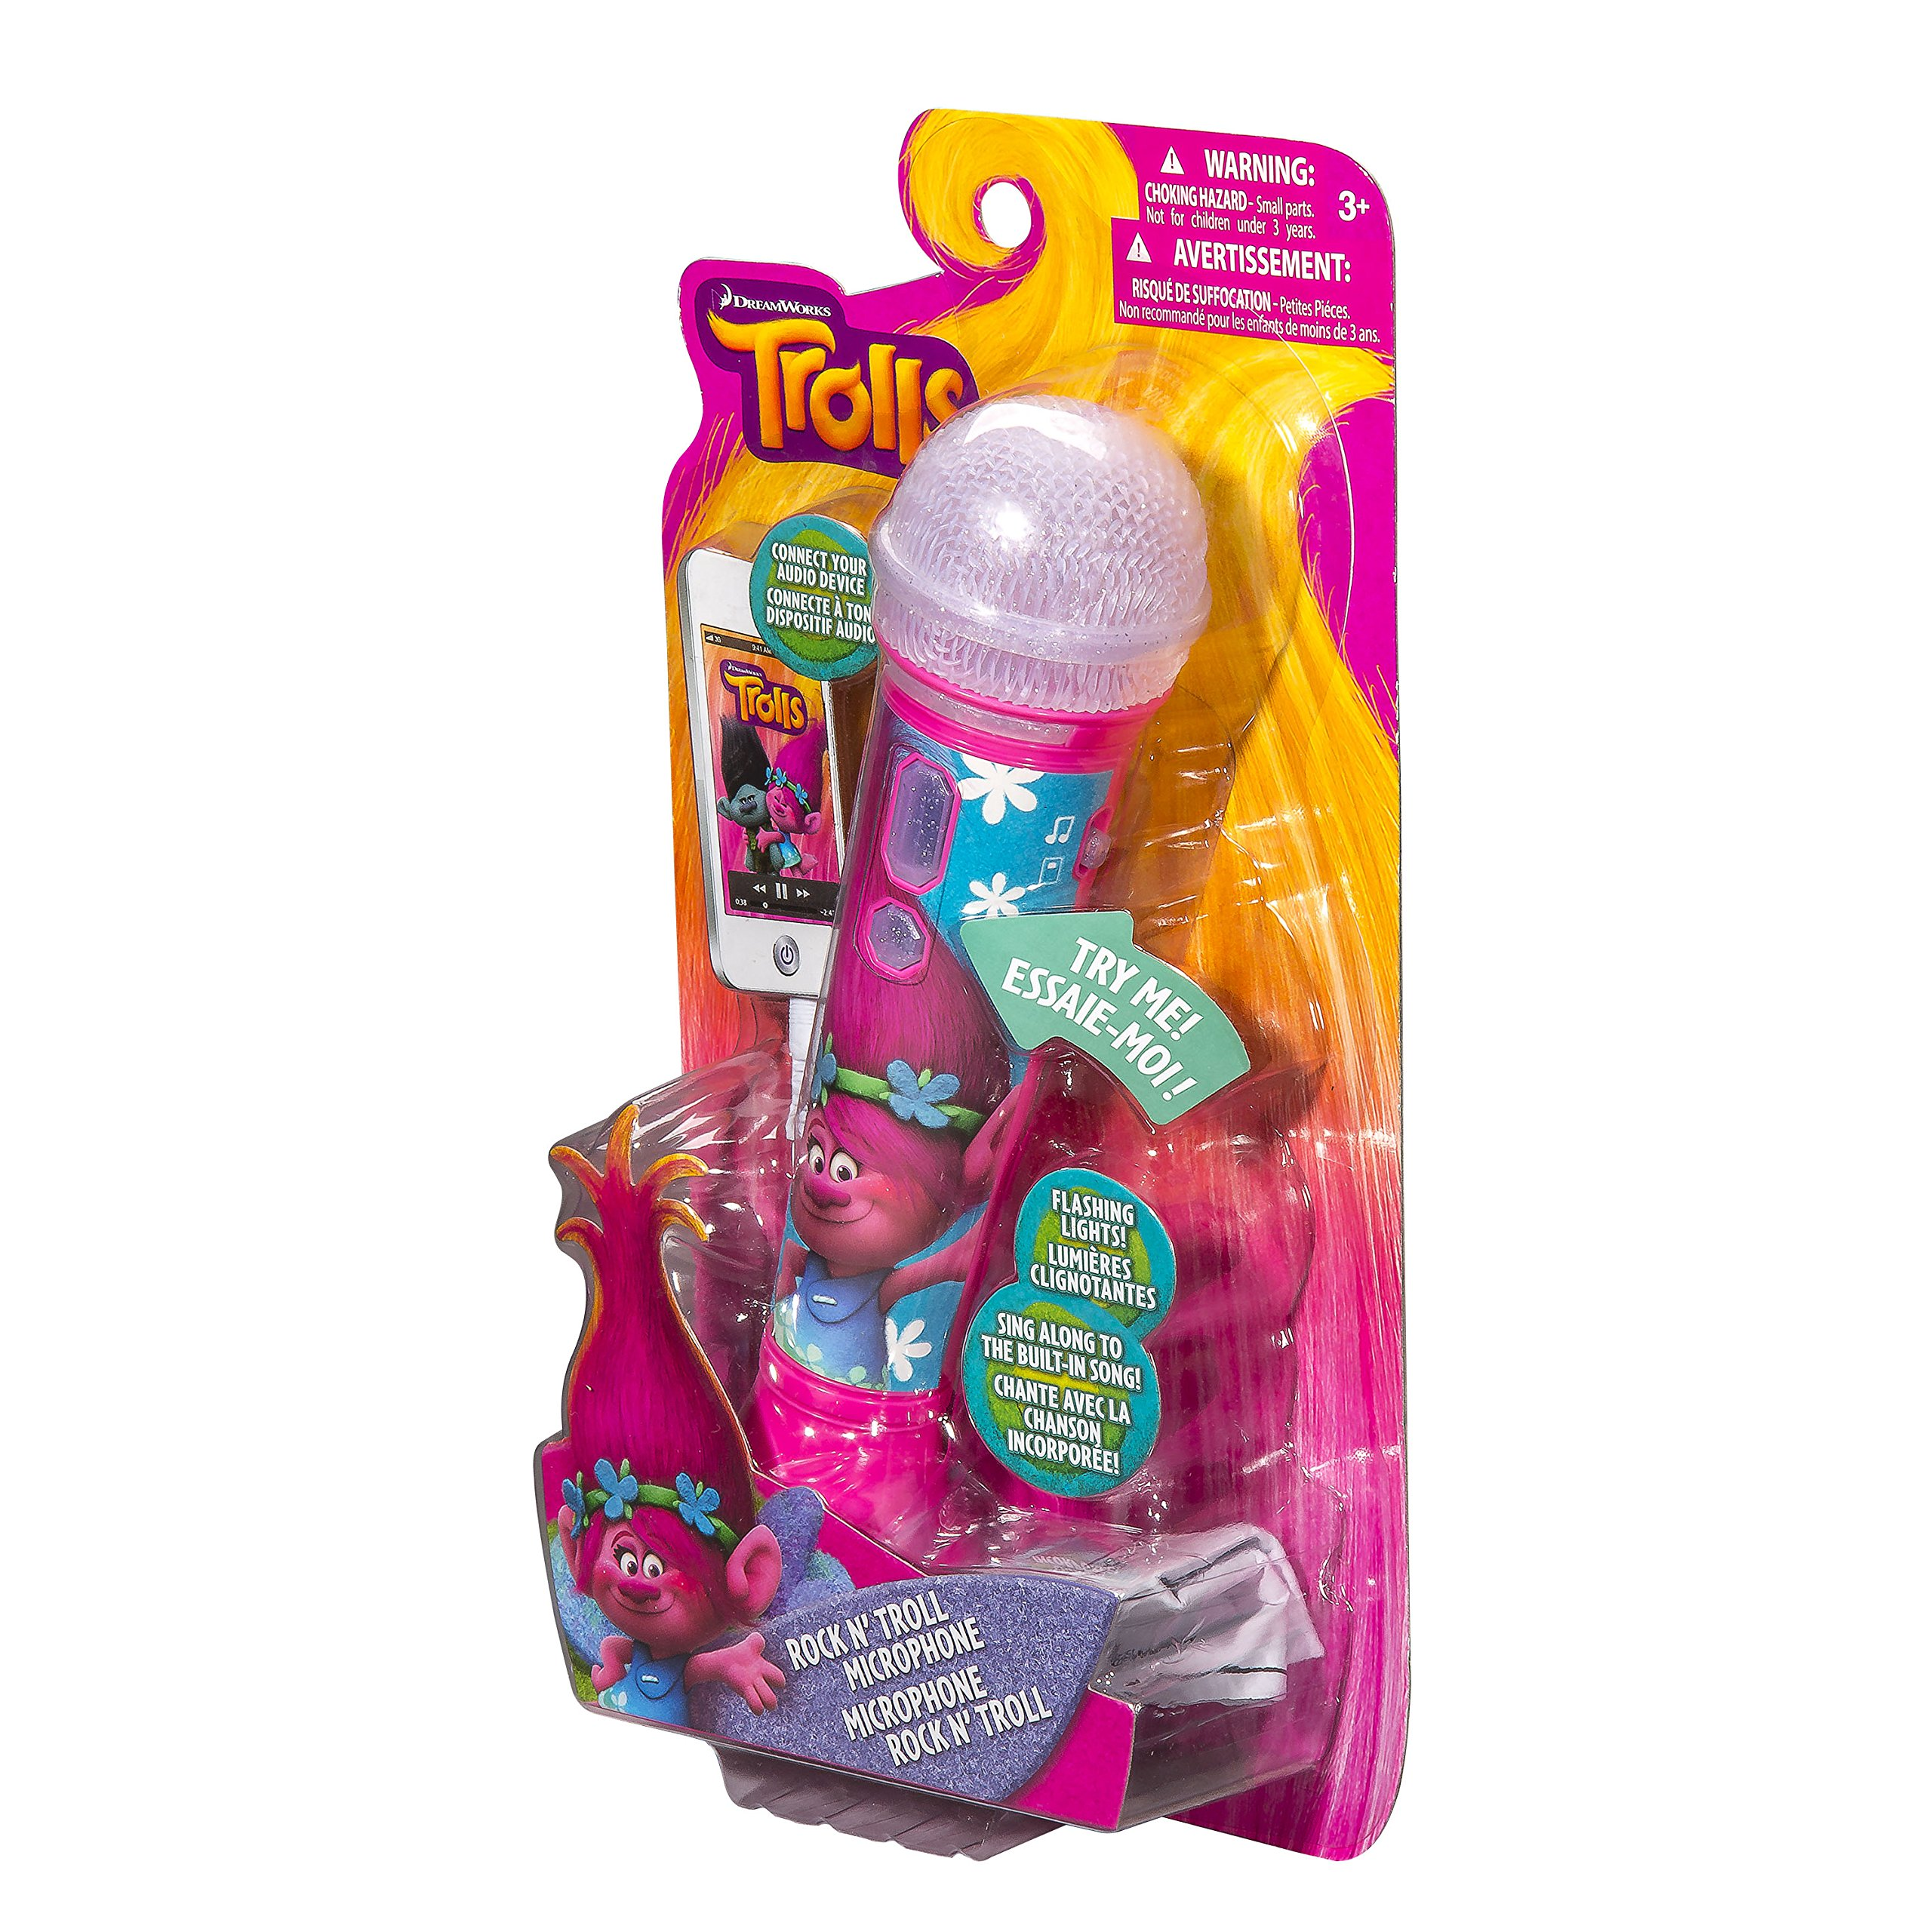 Trolls Sing Along  MP3 Microphone with Built in Music and Connects to Any MP3 Player